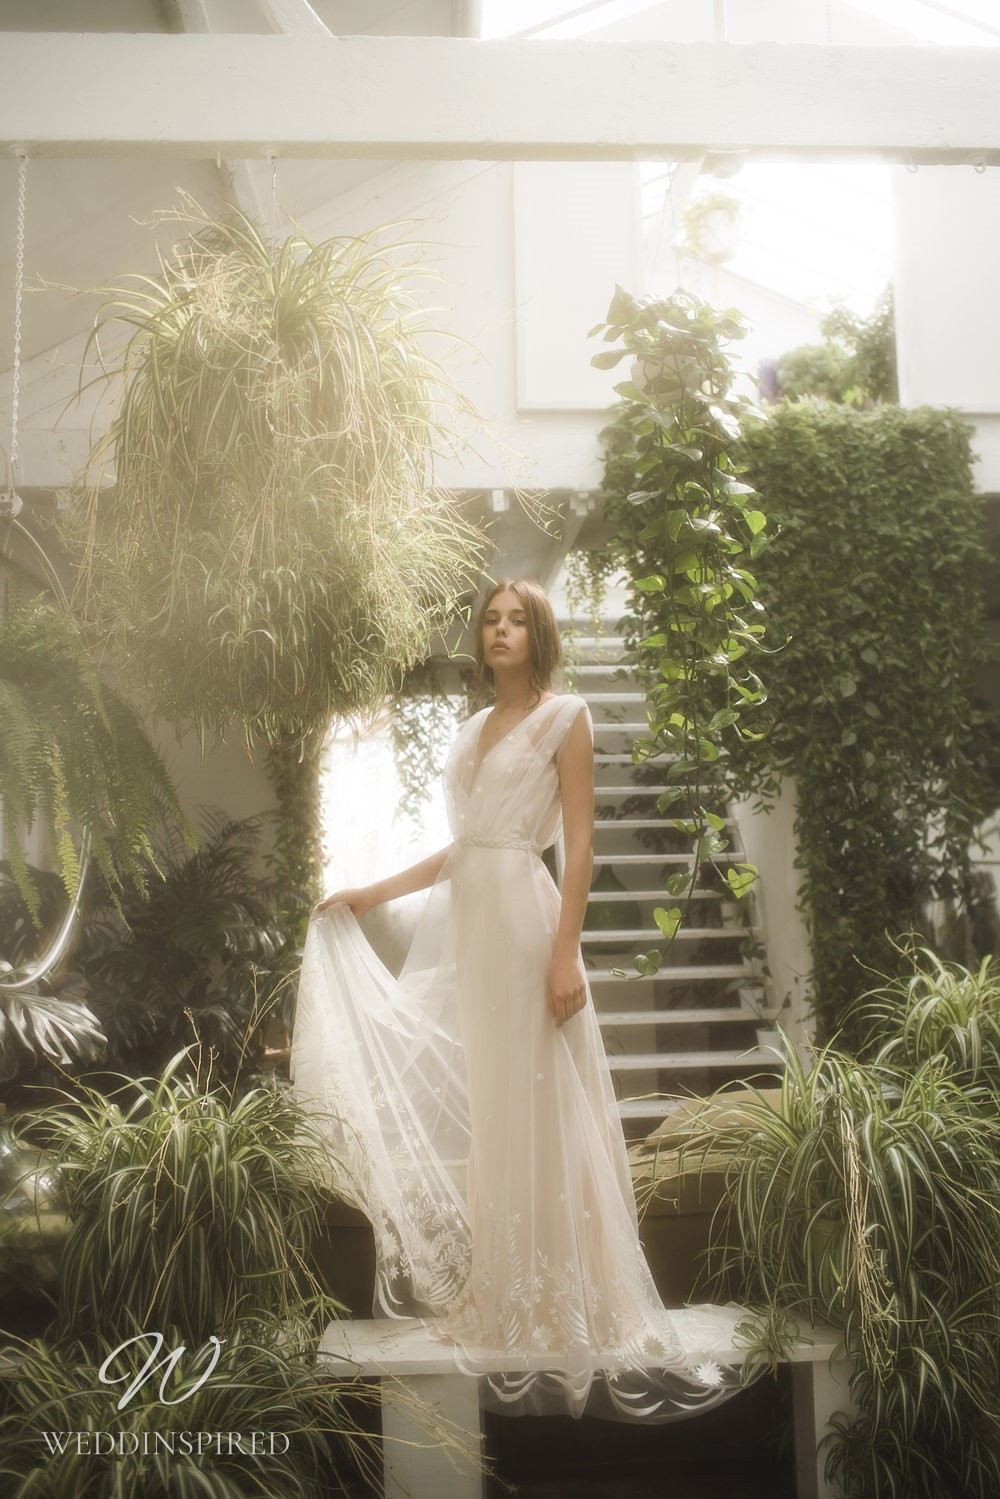 An Olwen Bourke soft flowy A-line wedding dress with an illusion overlay and a v neck